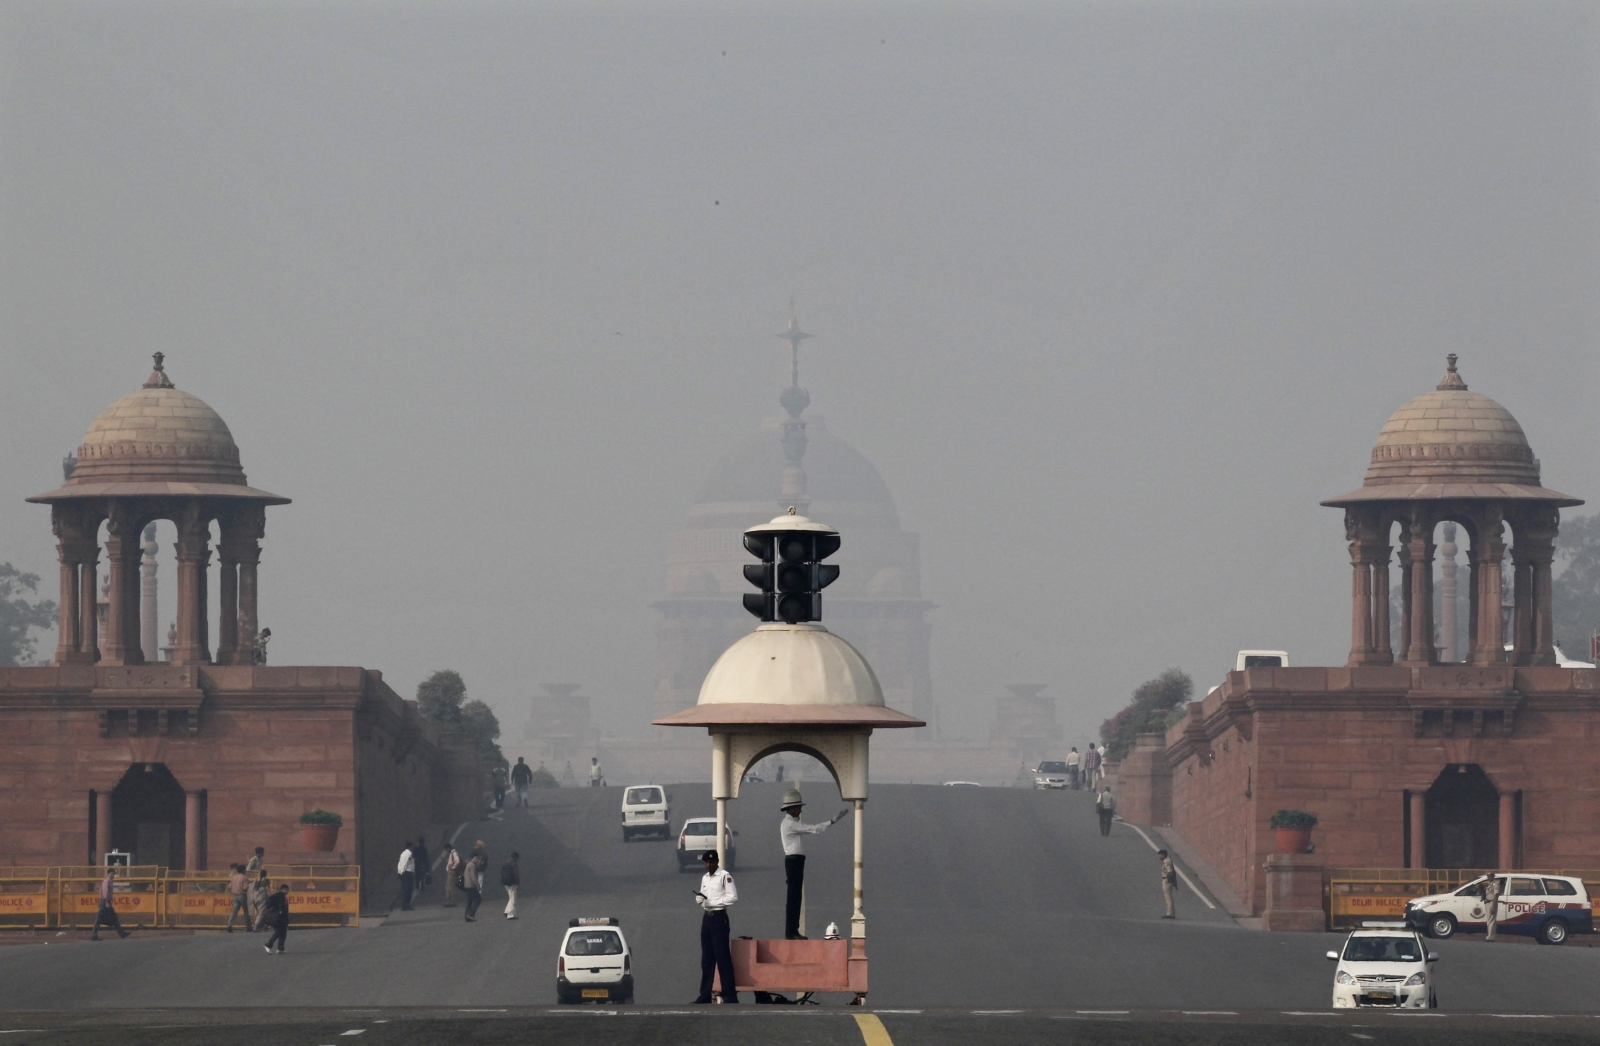 India: Despite hard evidence government refuses to act against vehicular pollution